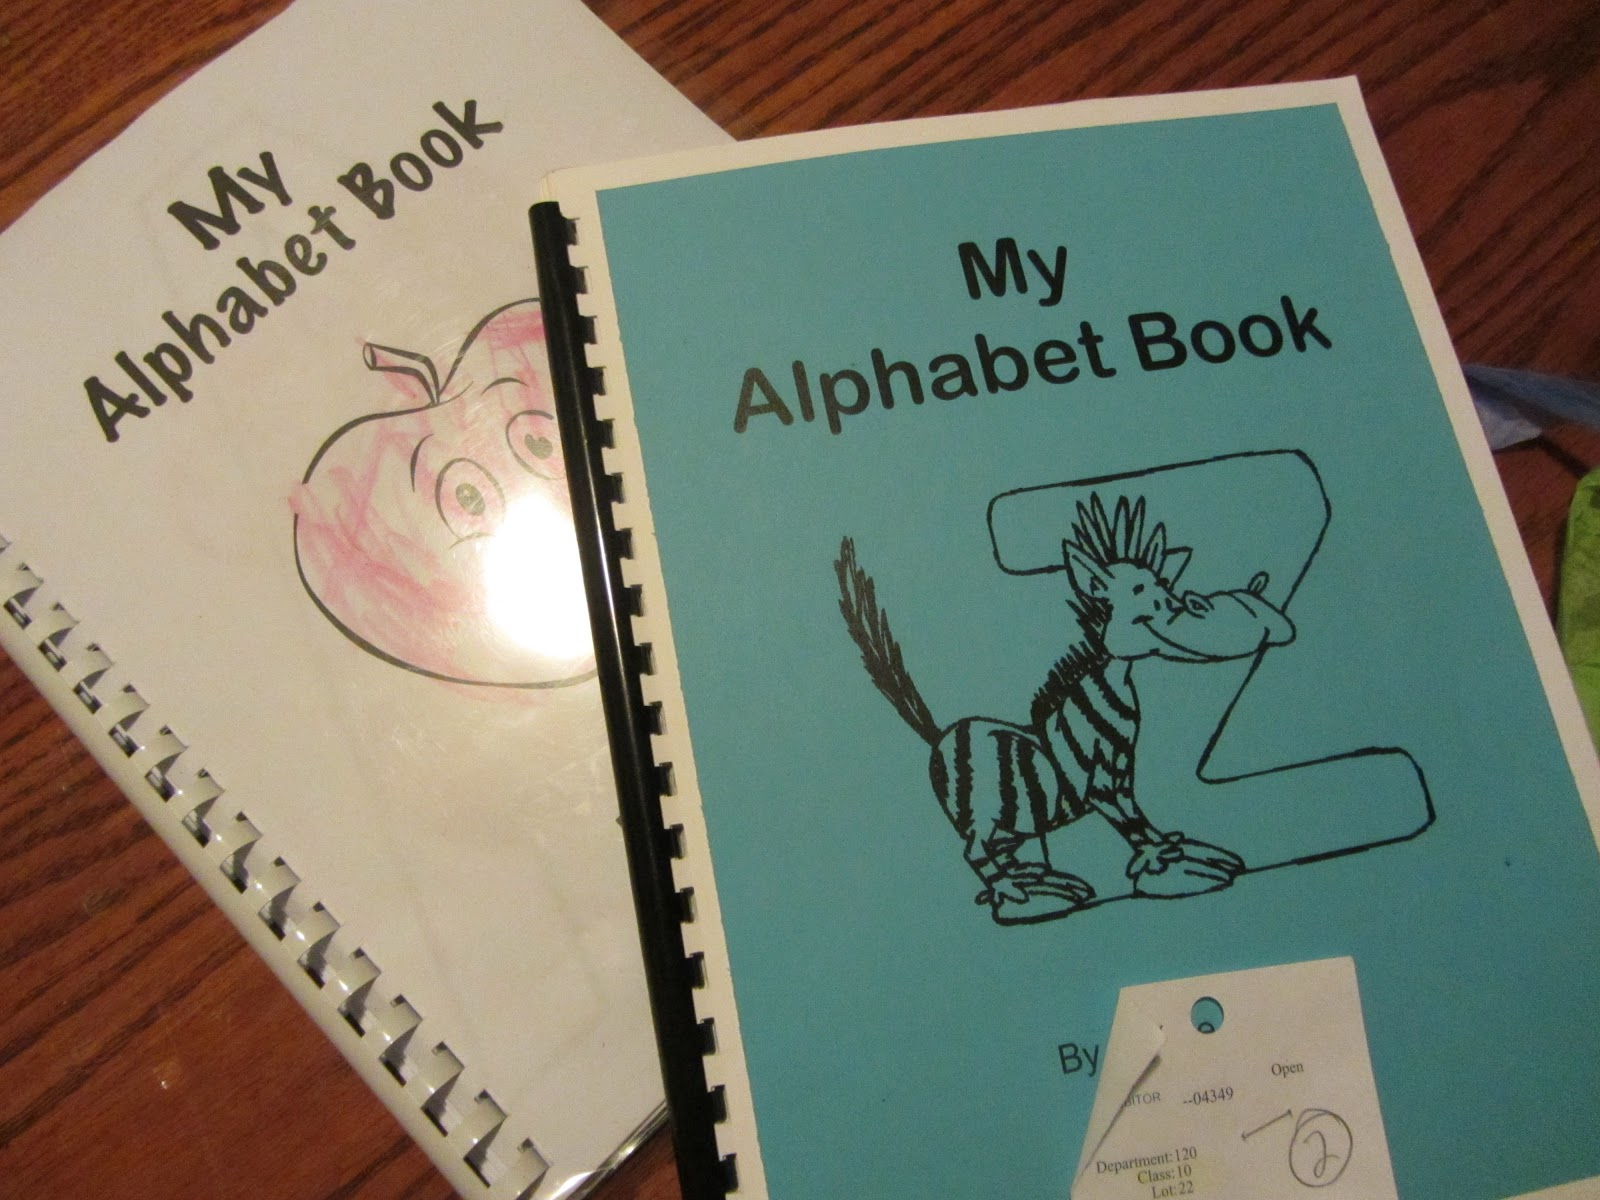 It's just a picture of Printable Alphabet Book with middle school